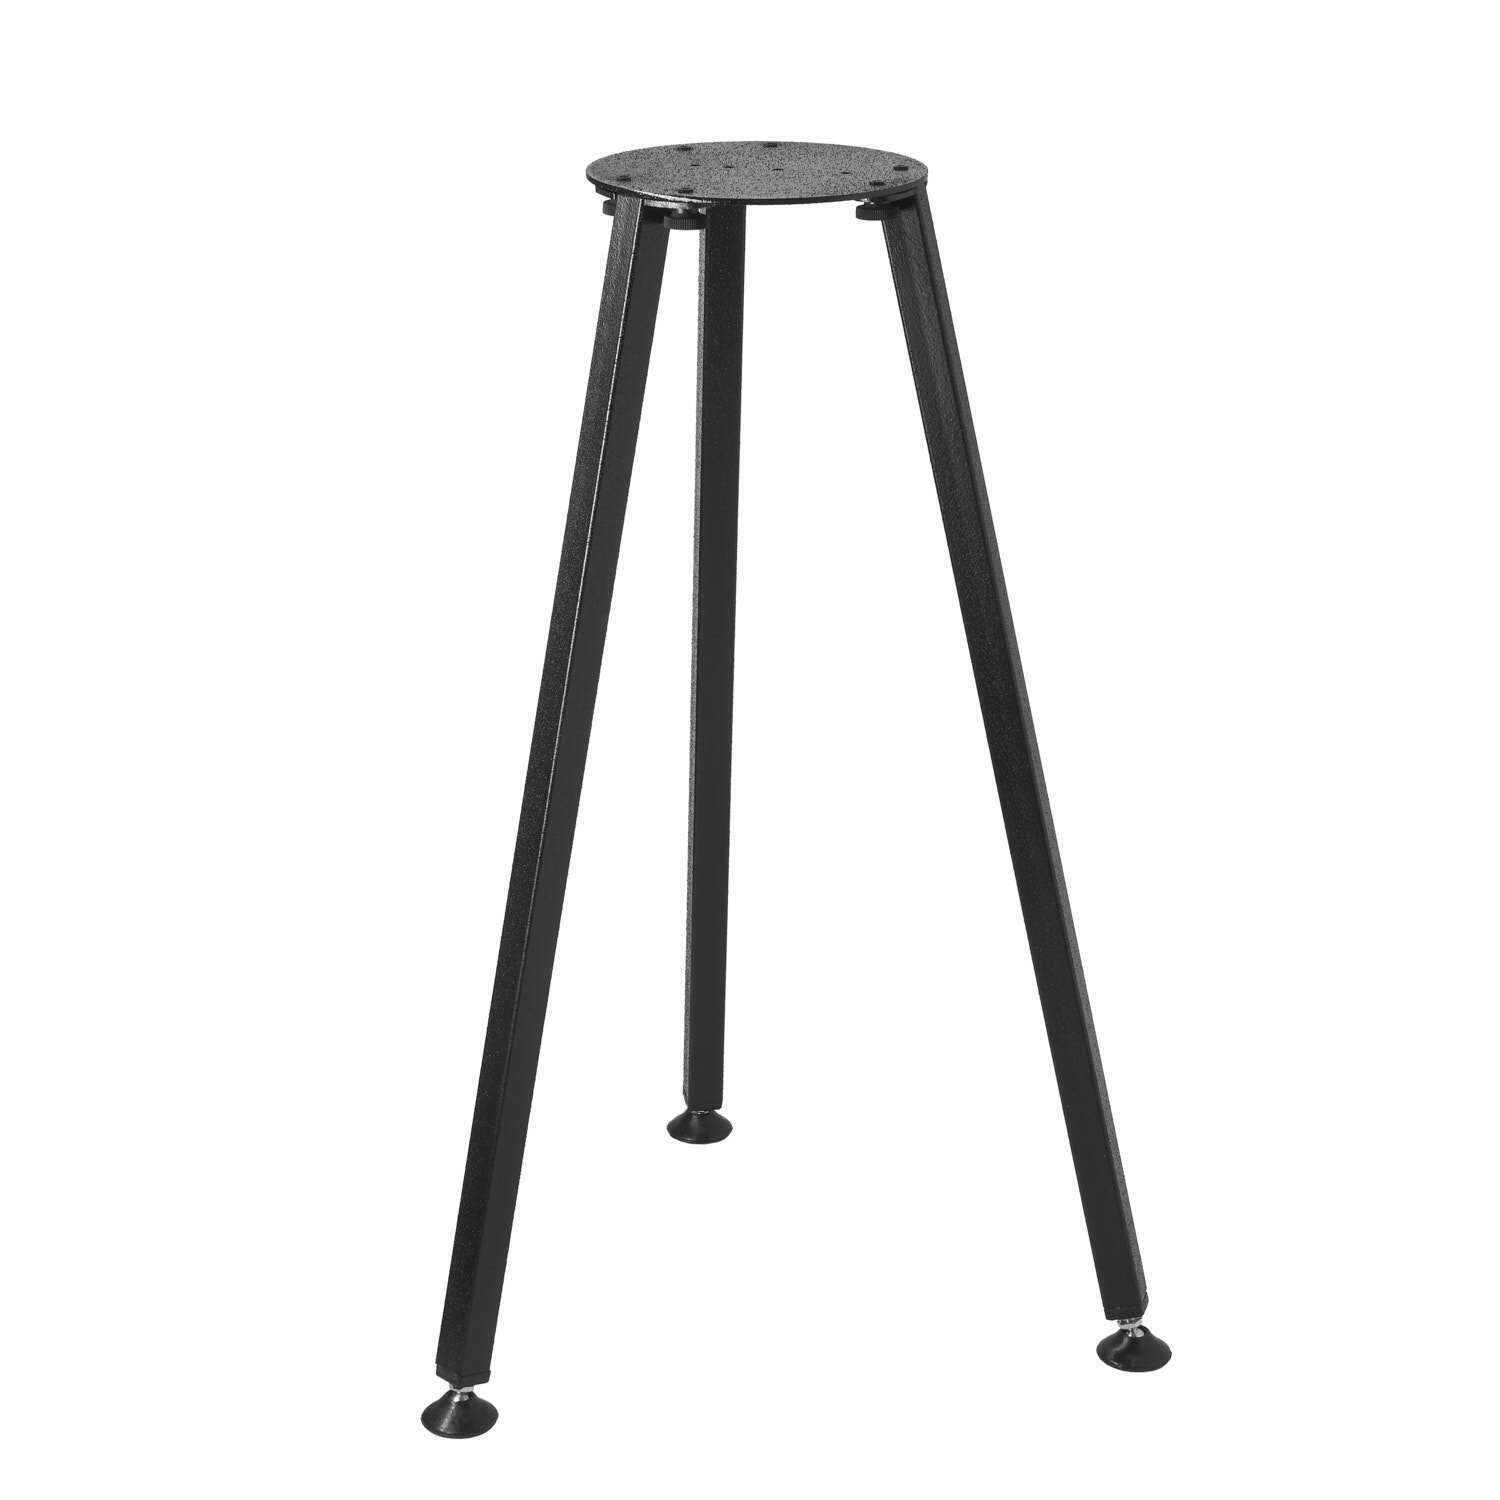 Outdoor Sundial Stand Pedestal For The Metal Foundry Sundials ONLY